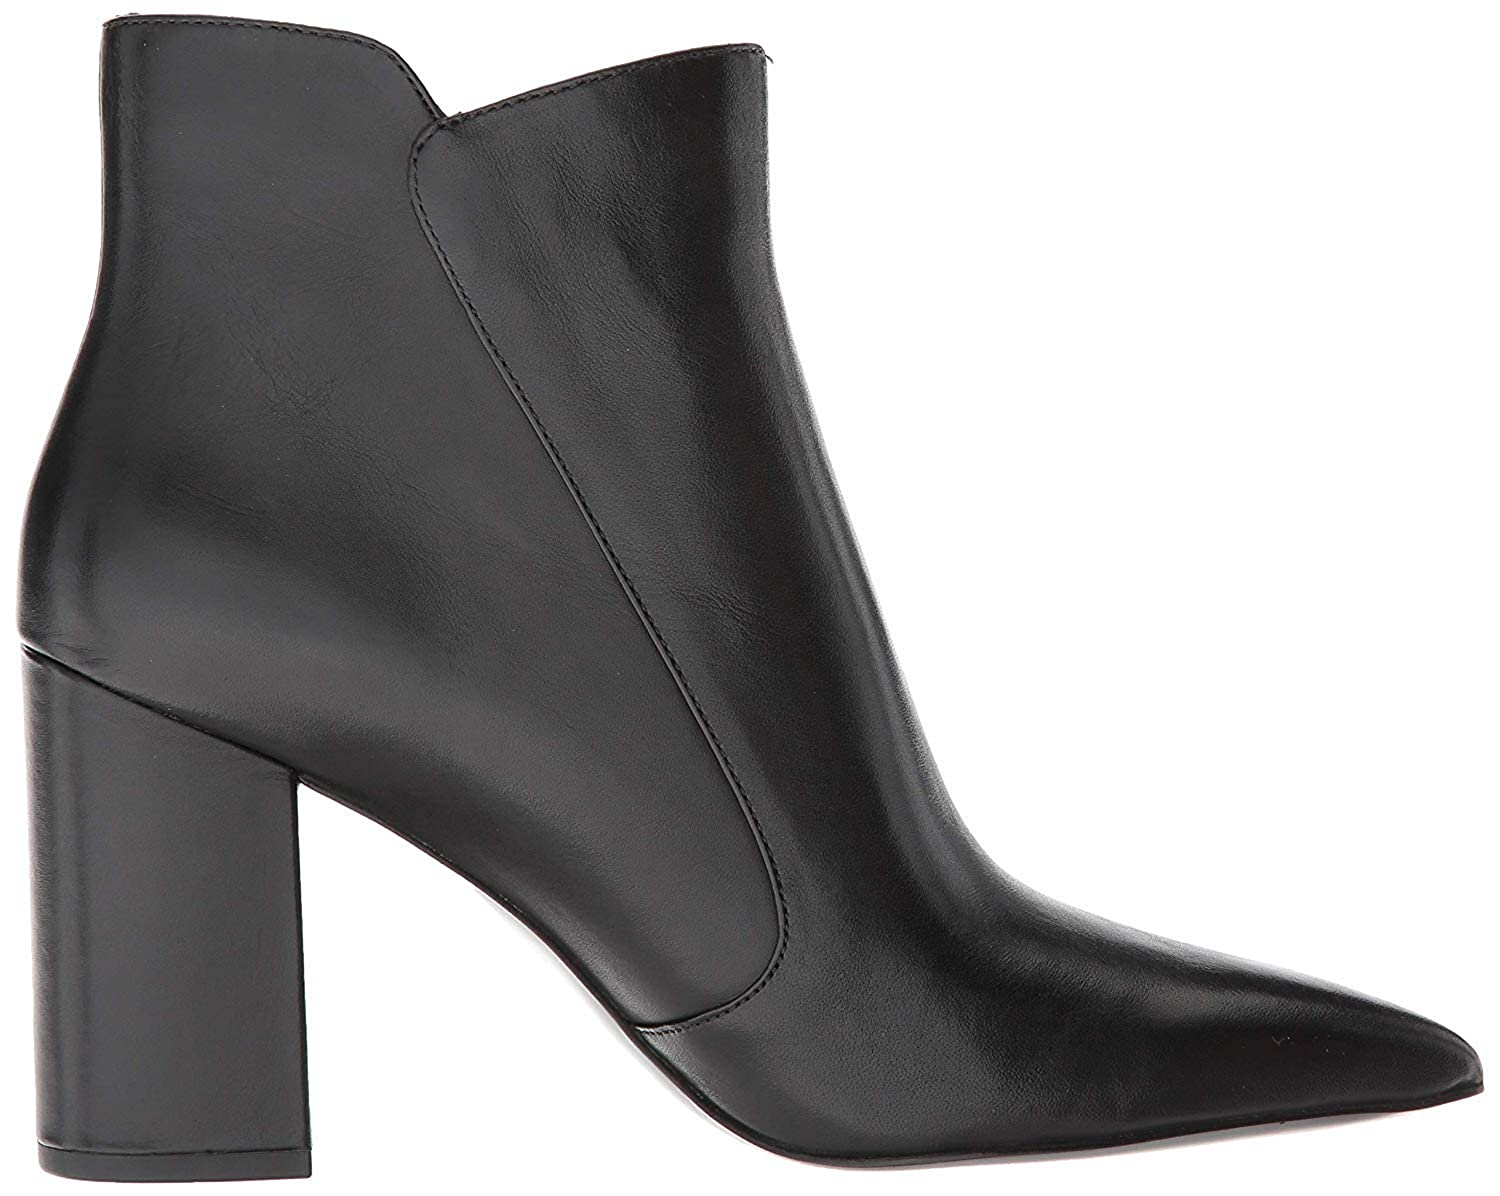 Nine West Womens Russity Pointed Toe Ankle Fashion Boots